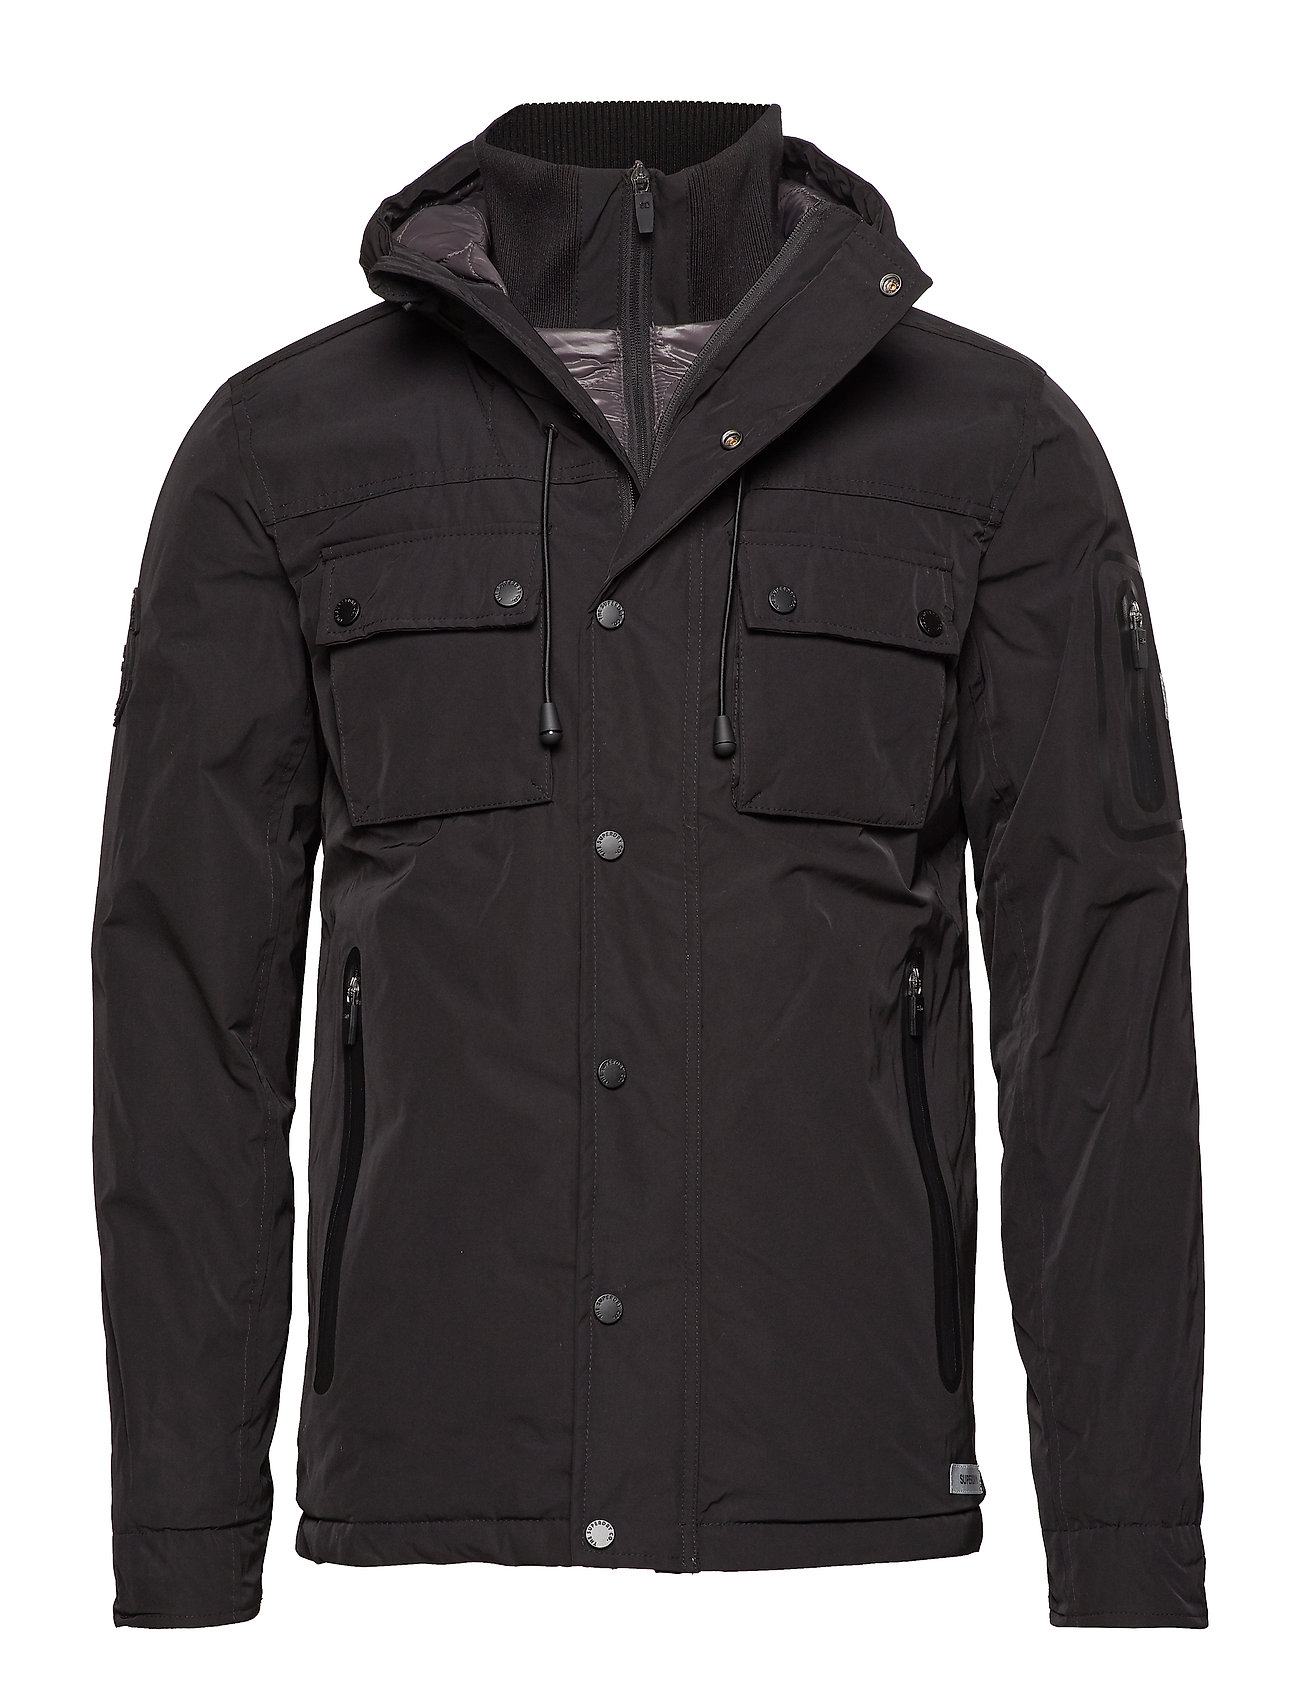 Superdry VESSEL JACKET - BLACK